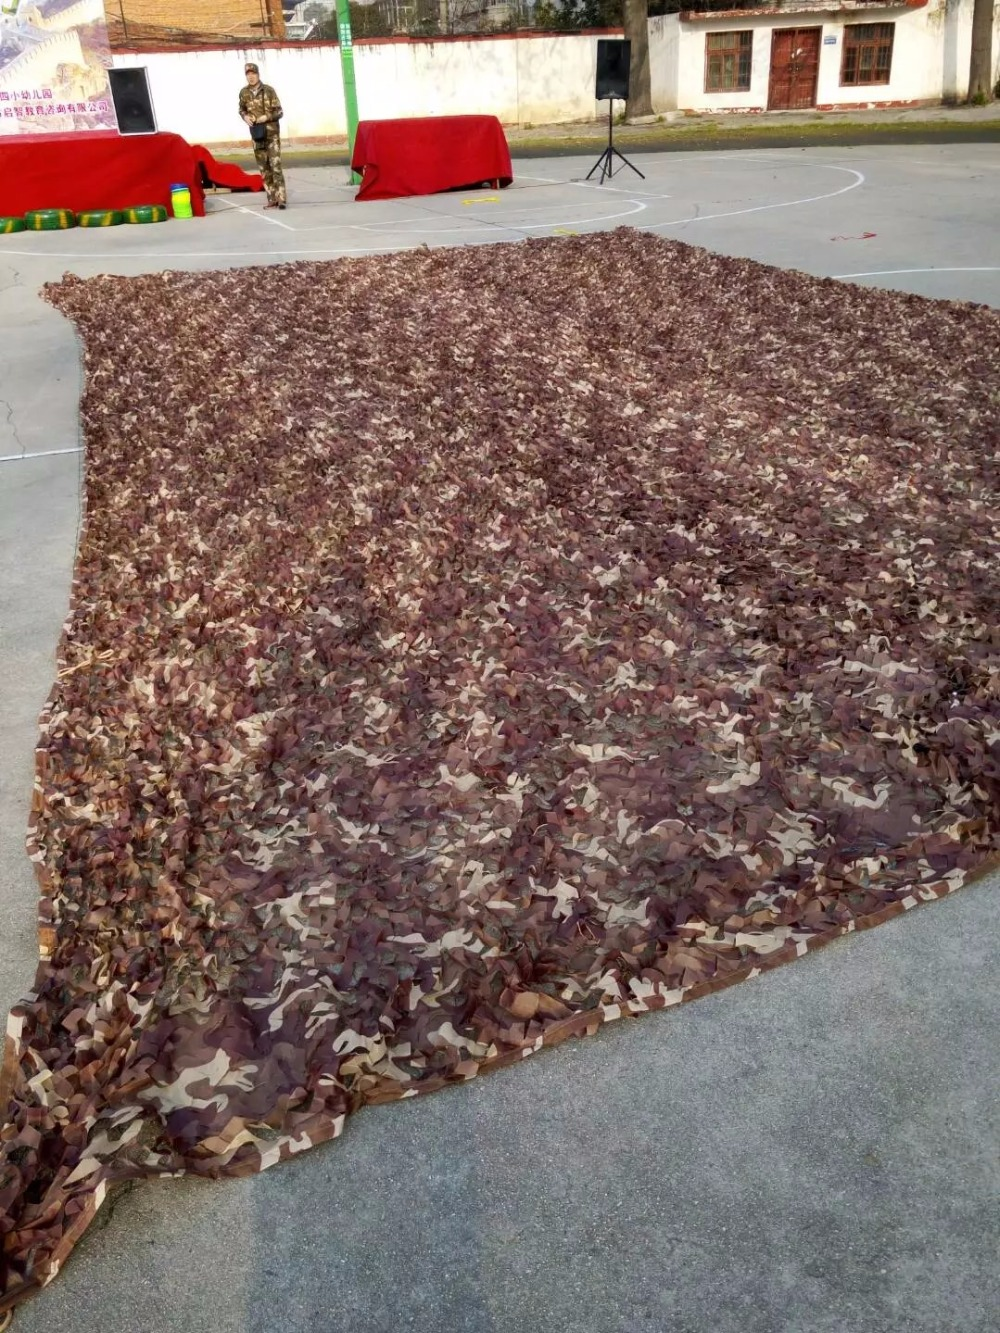 1 5X5M Military Desert Camouflage Net Autumn Leaves Camo netting for Camping Hunting car Camo cover